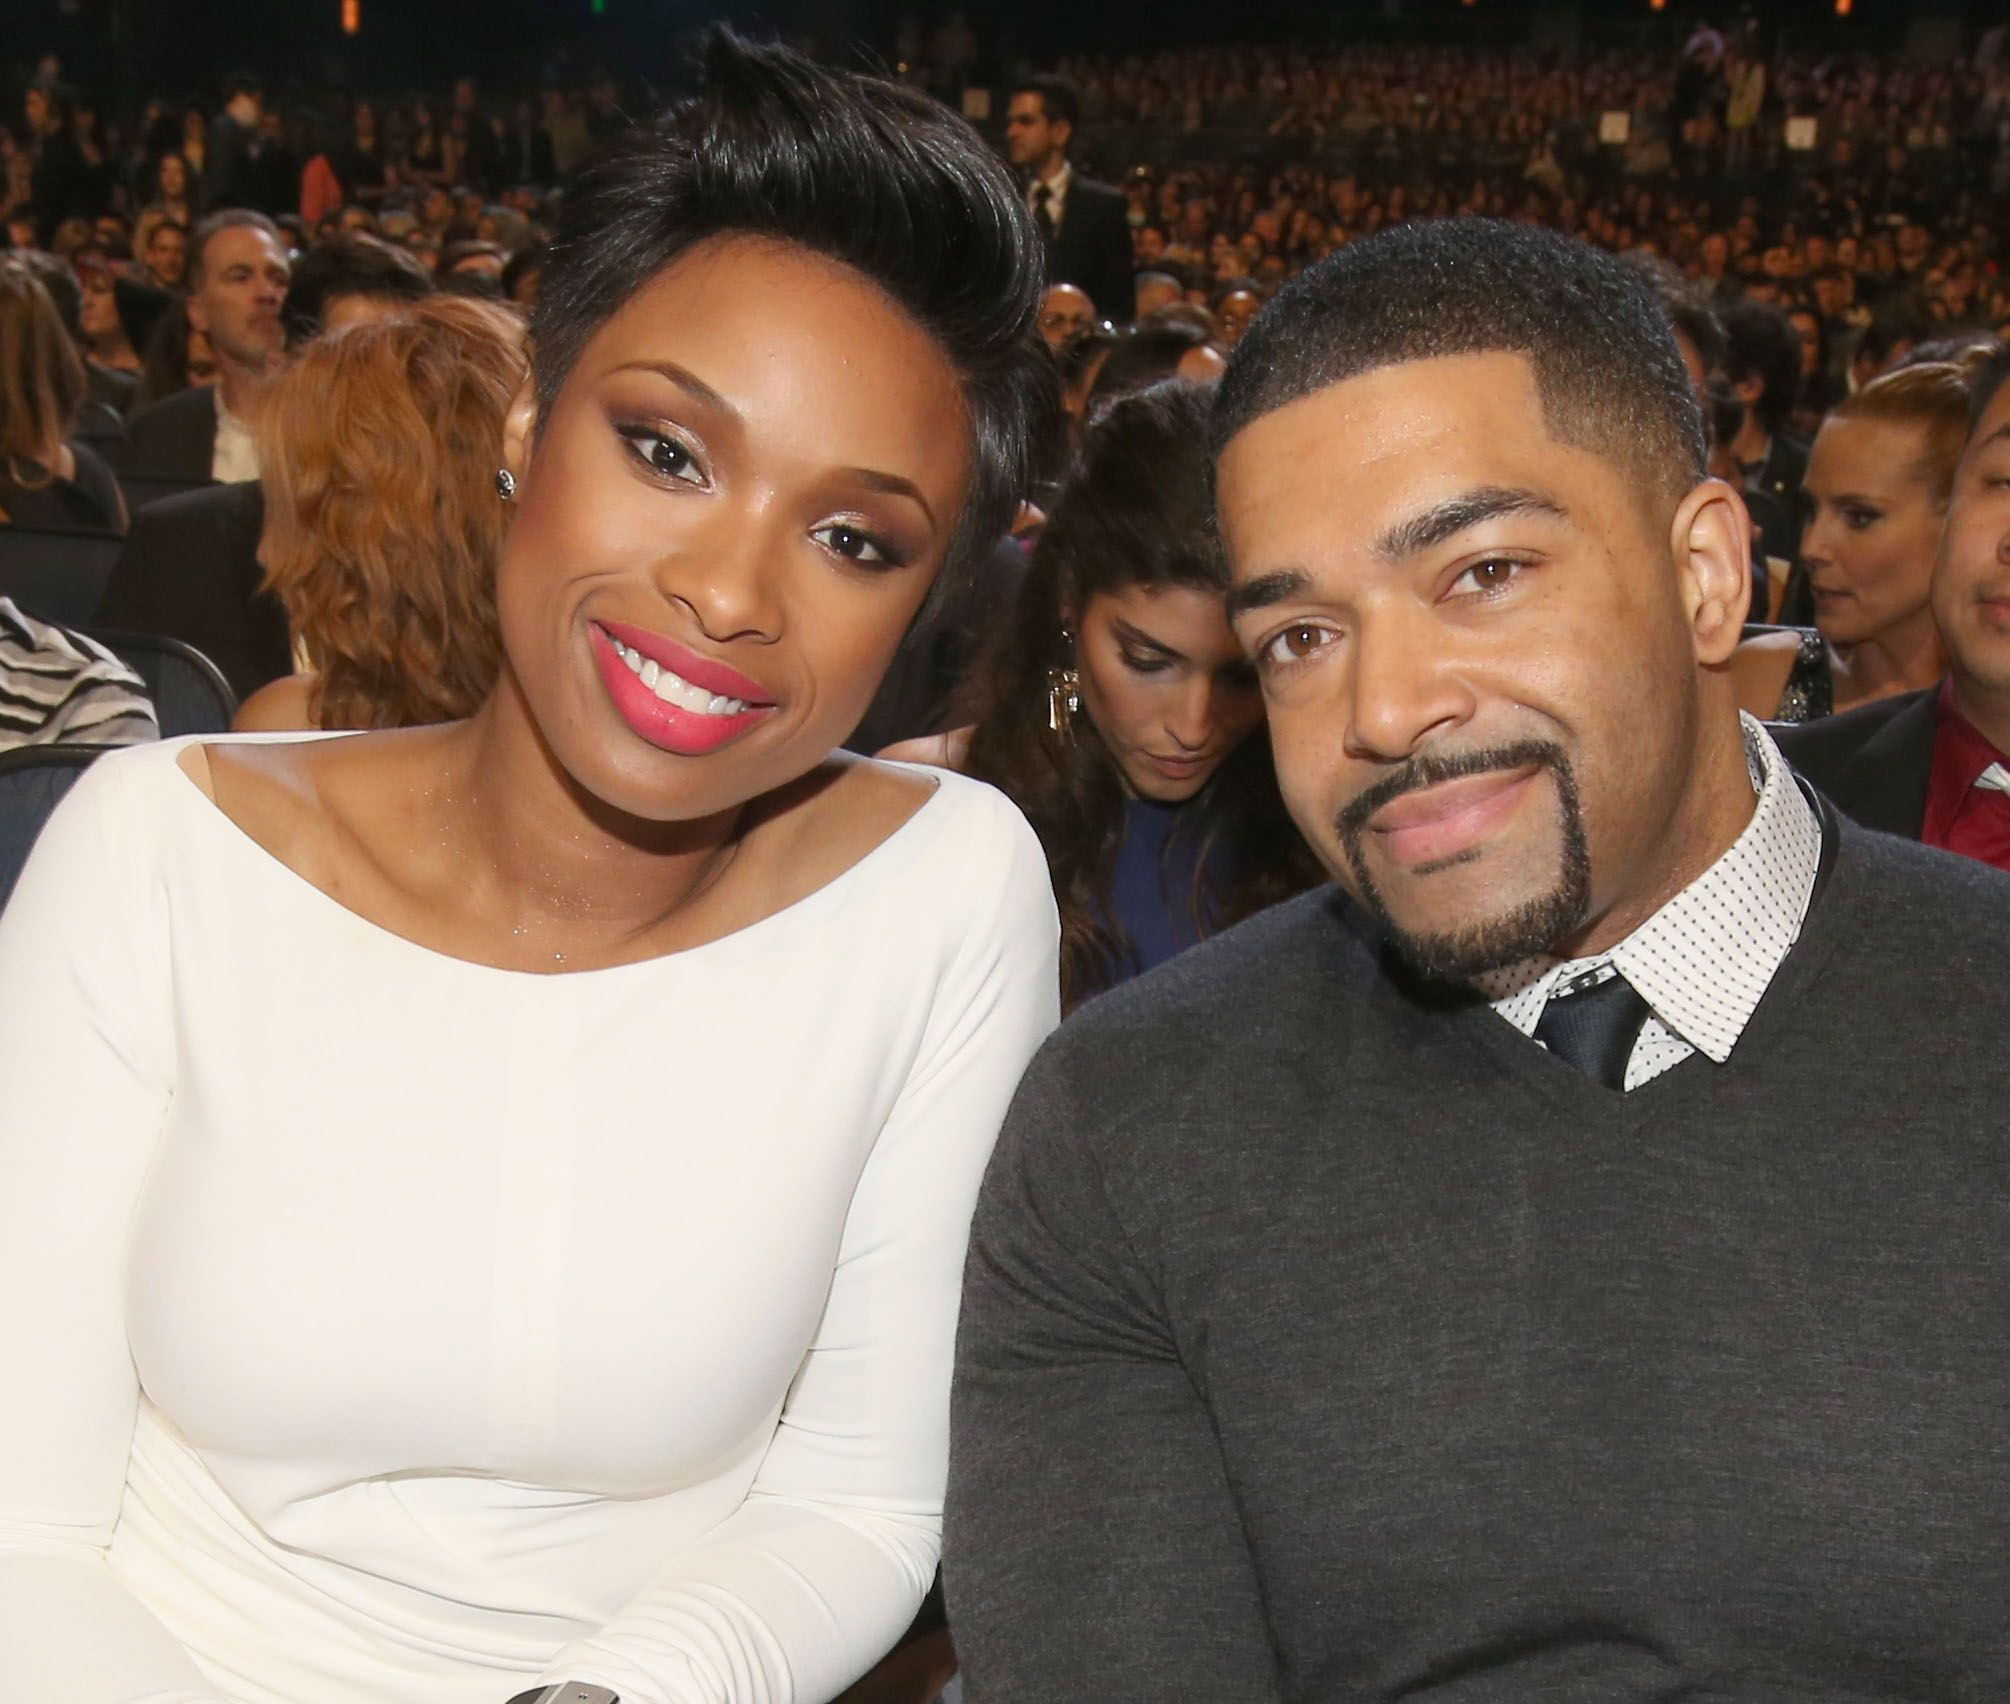 Jennifer Hudson and David Otunga at the 40th Annual People's Choice Awards on January 8, 2014 in Los Angeles, California. | Photo: Getty Images